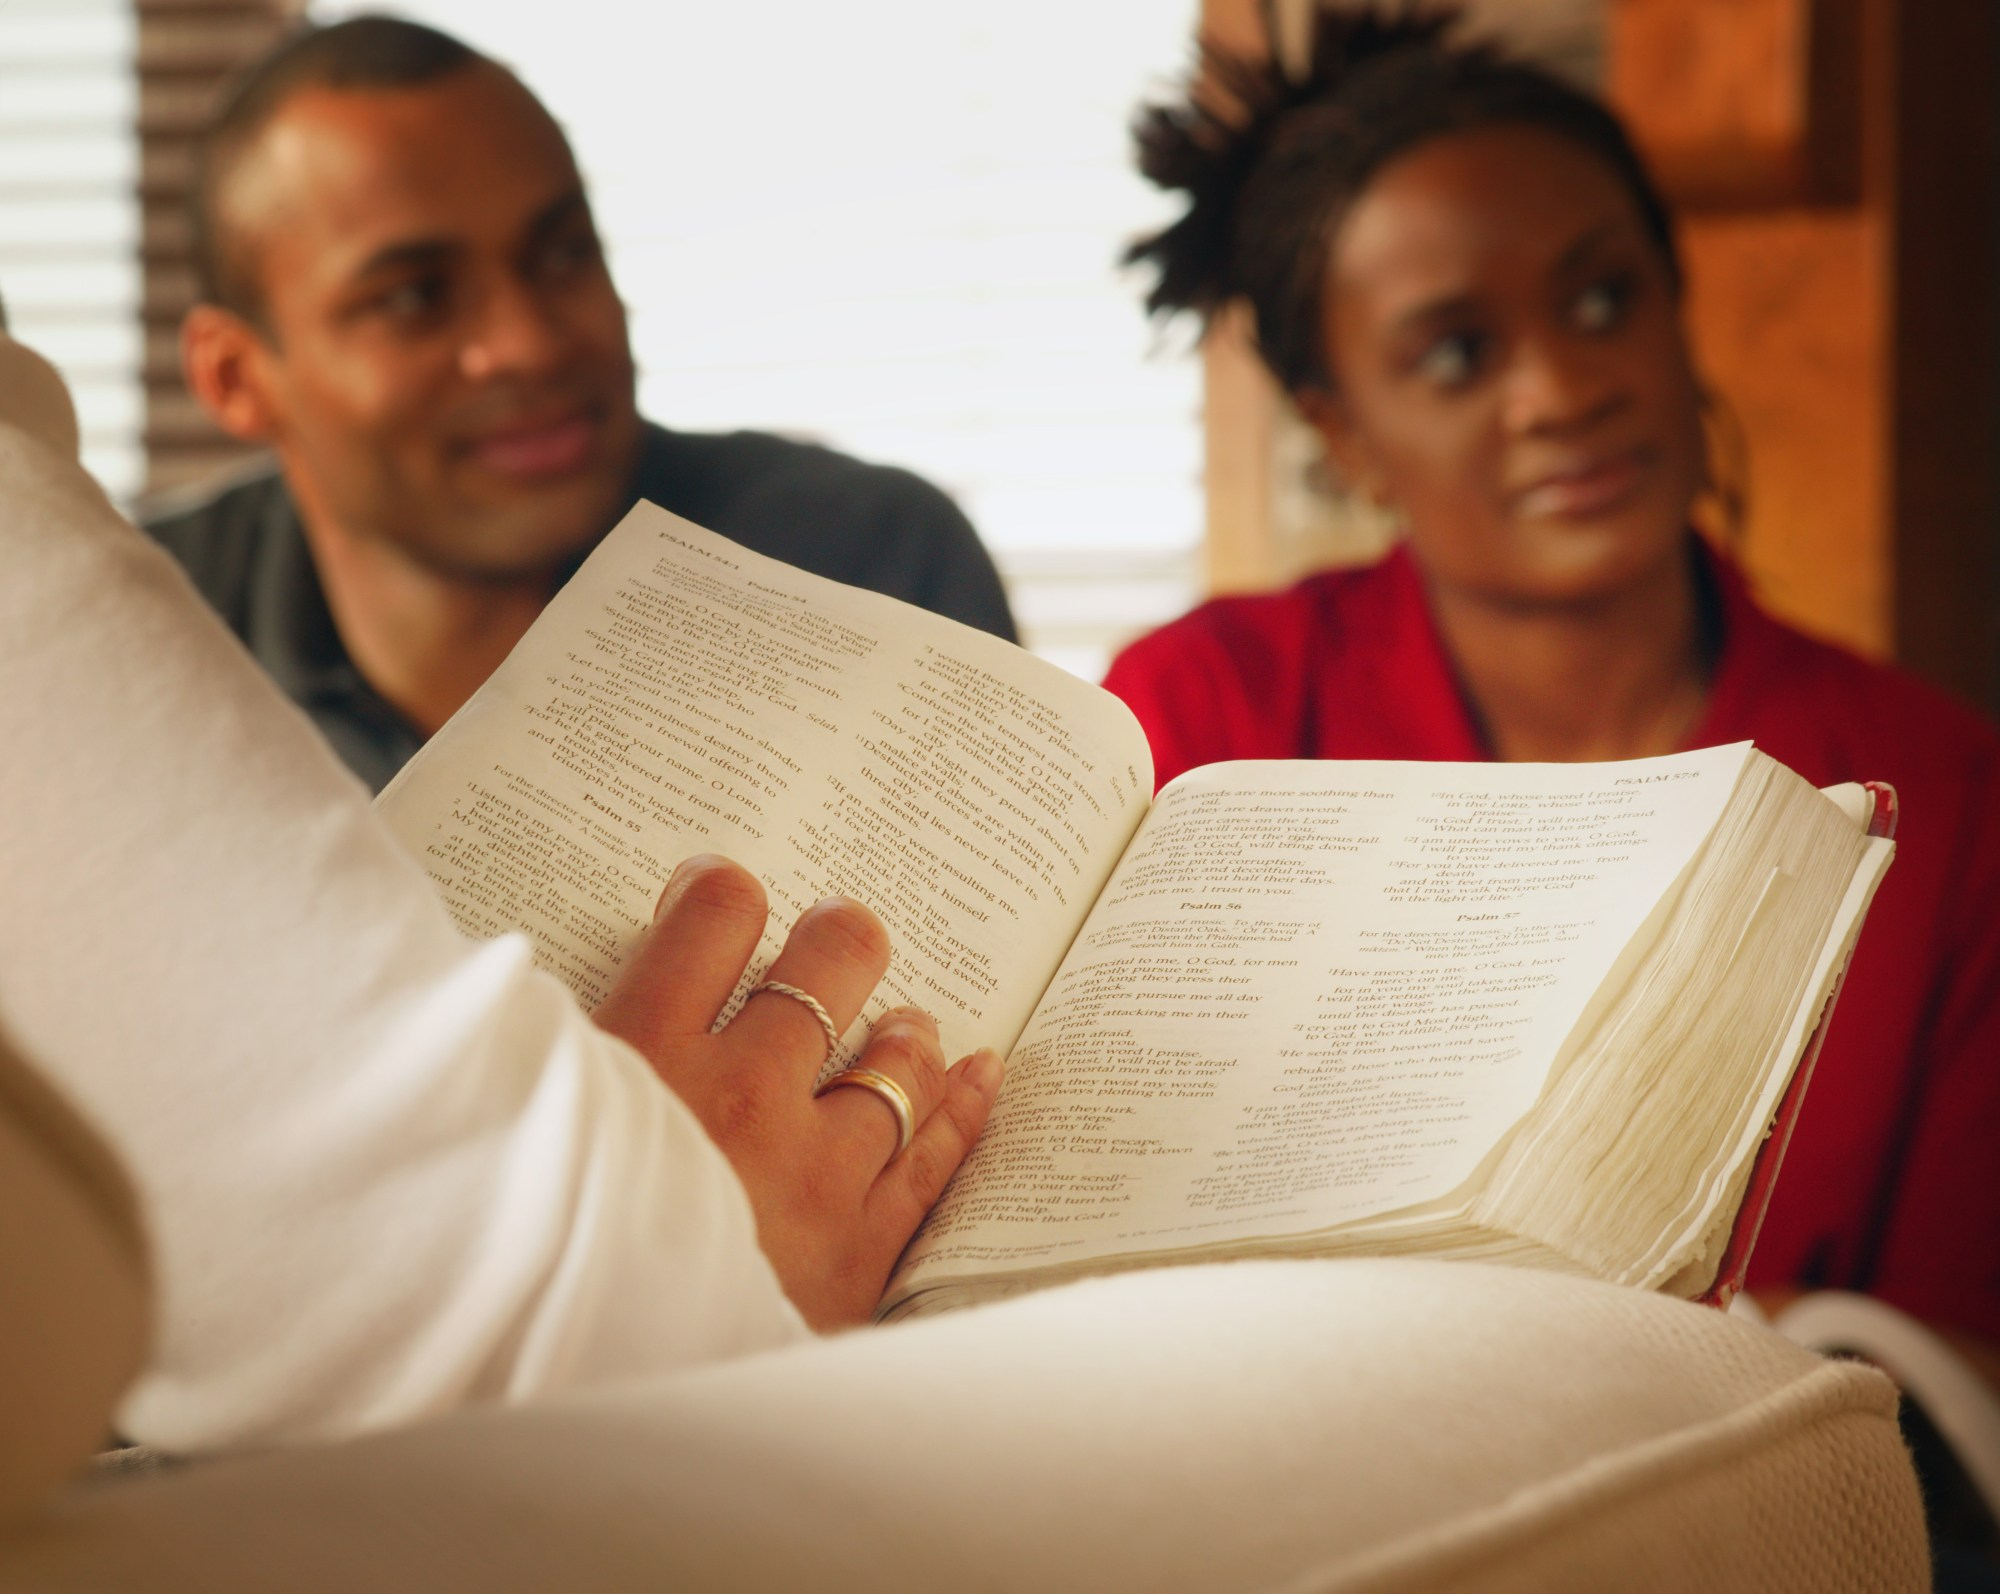 hight resolution of young people studying the bible